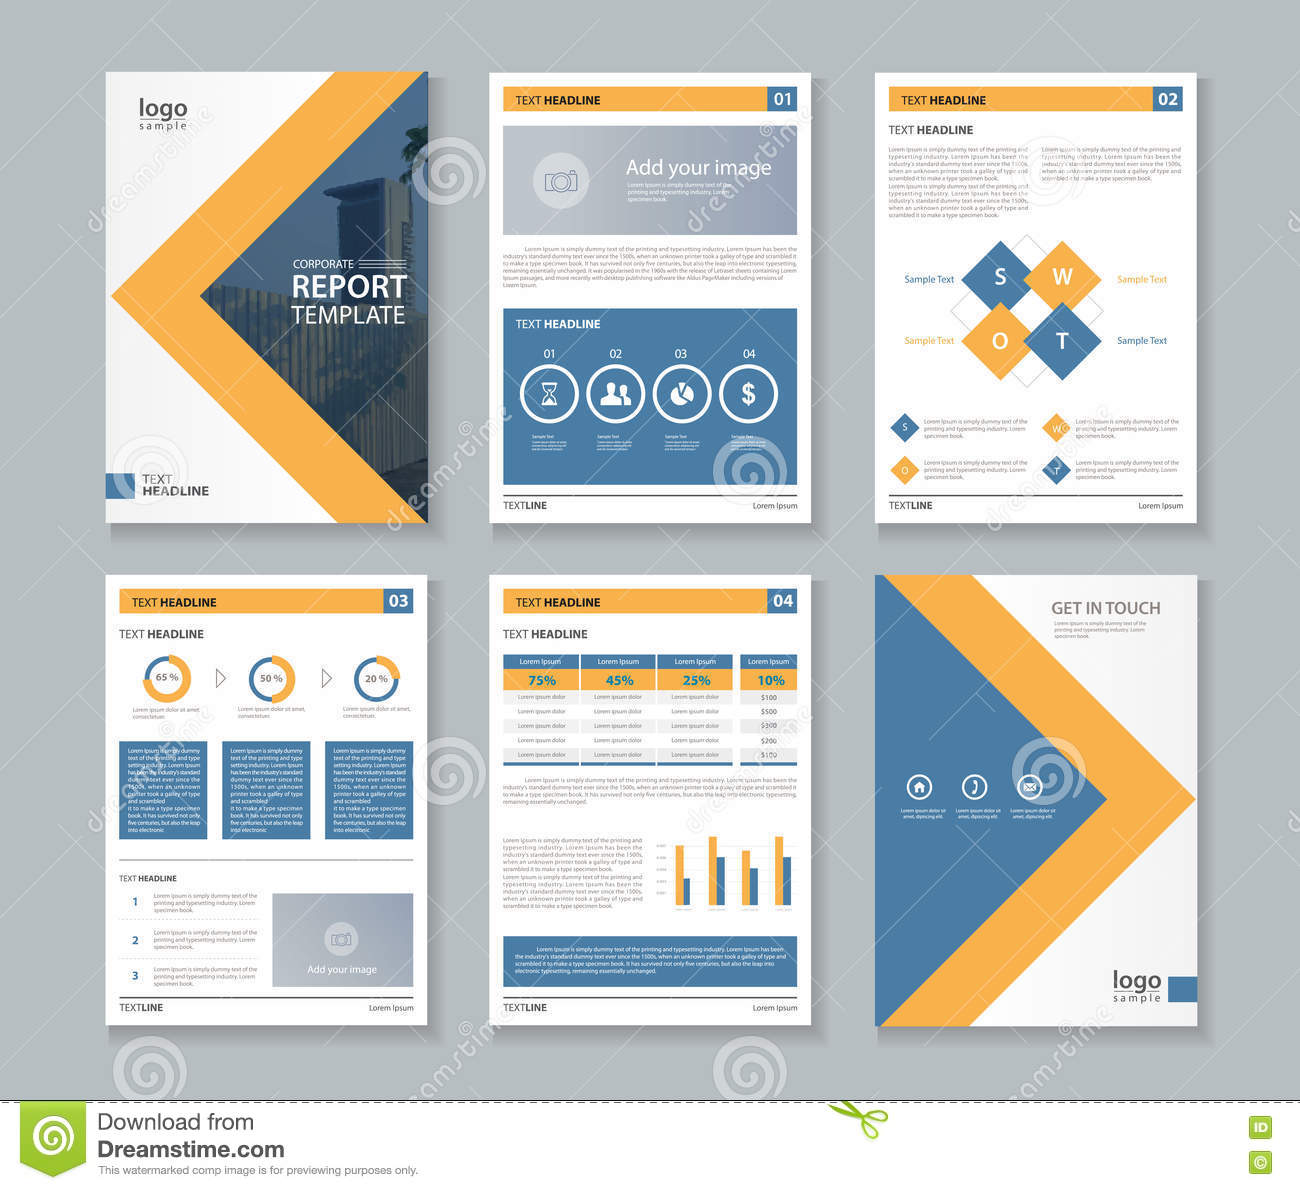 company profile cover page vector best online resume builder company profile cover page vector company profile vector 723 templates page 1 cover brochure flyer